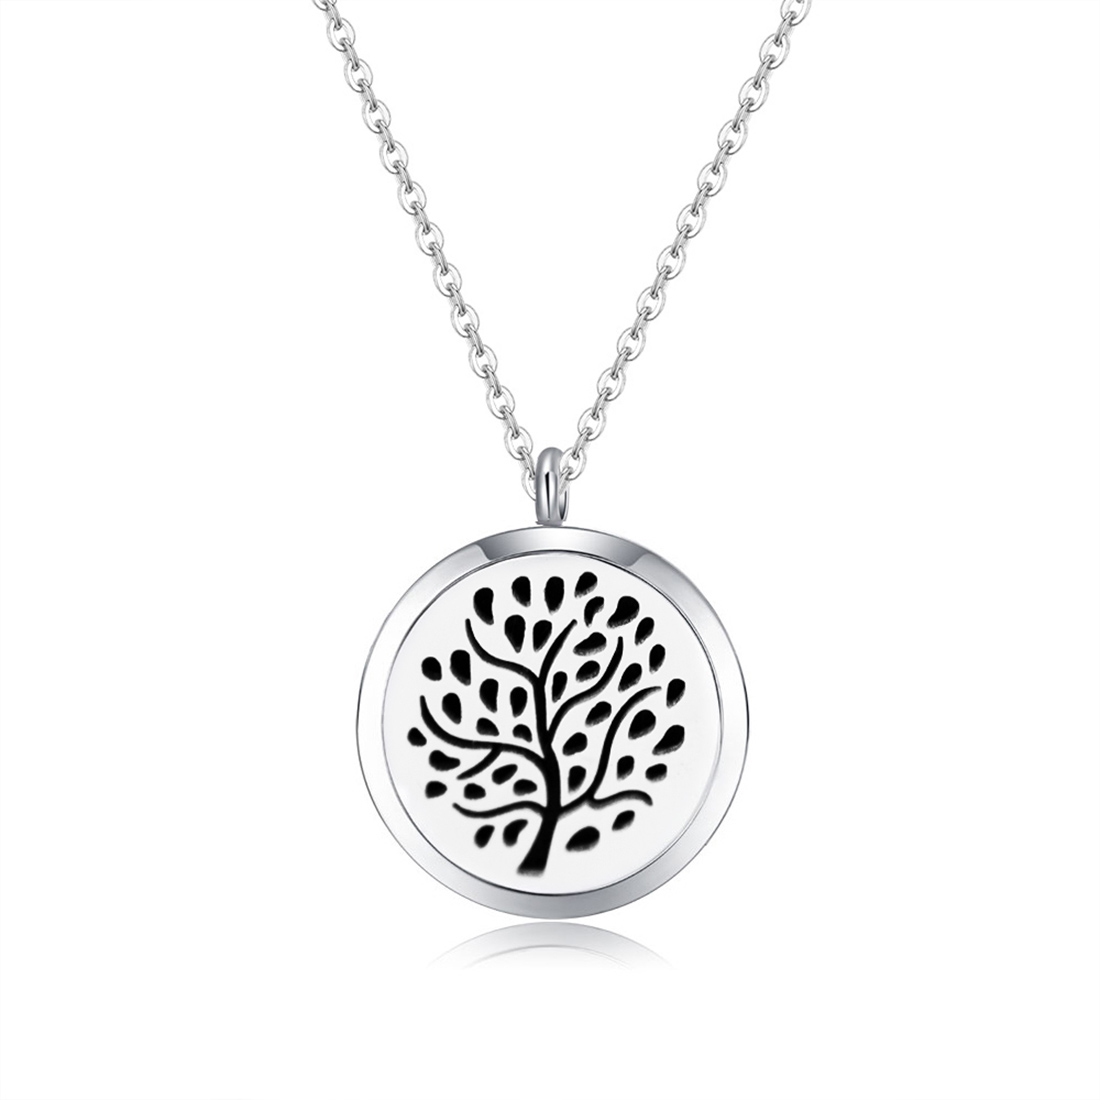 10pcs Mesinya silver color new design tree  (30mm)Aromatherapy / Essential Oils 316L S.Steel Perfume Diffuser Necklace